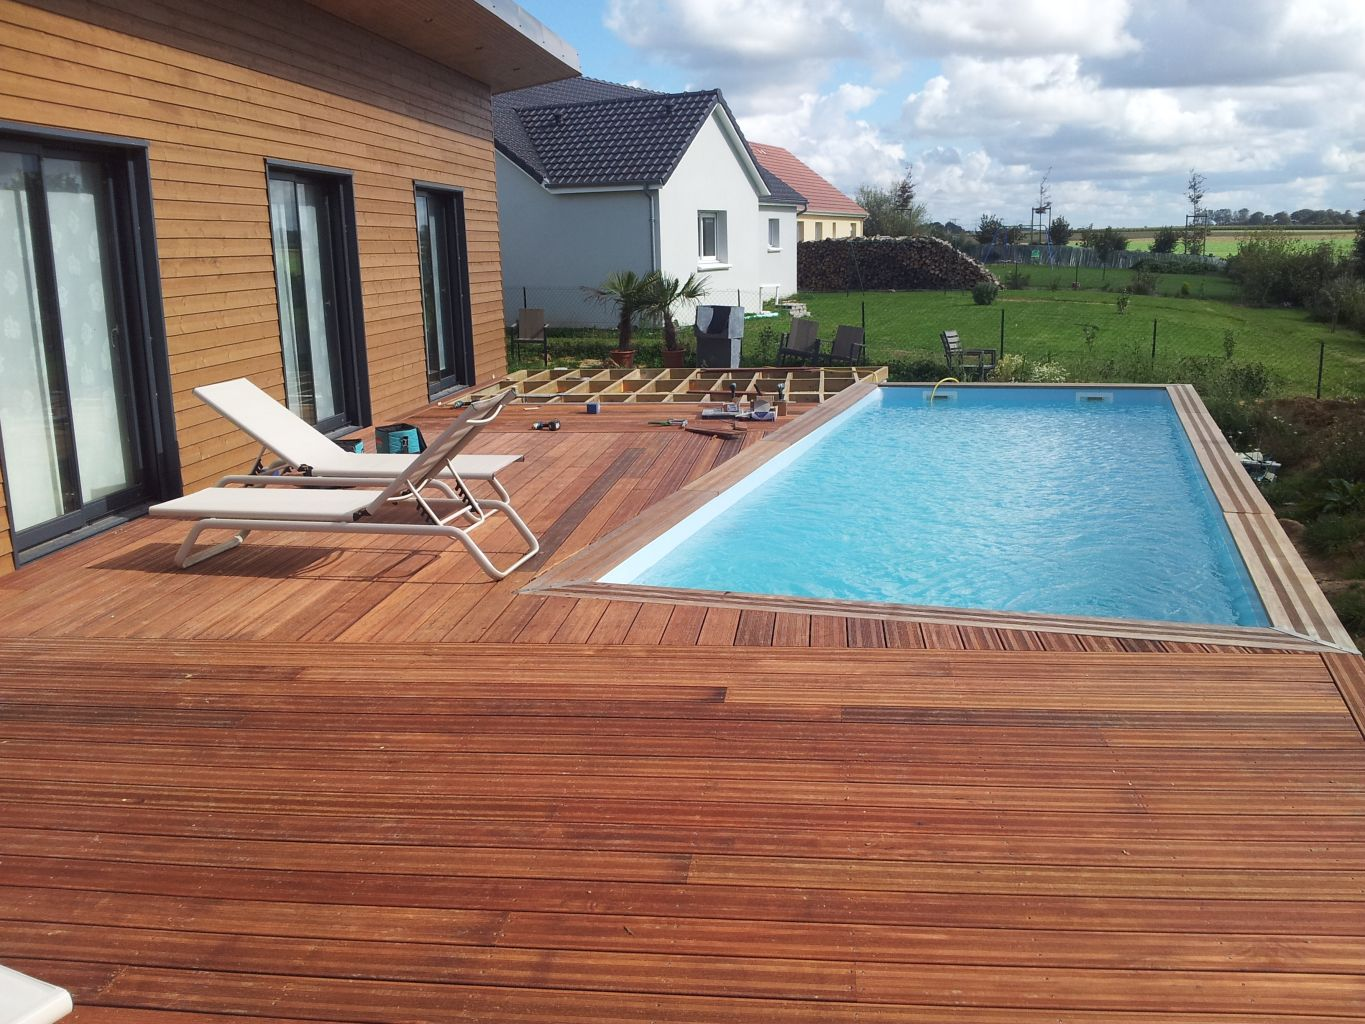 Terrasse avec piscine berneval le grand 76370 djsl bois - Photo des piscines ...